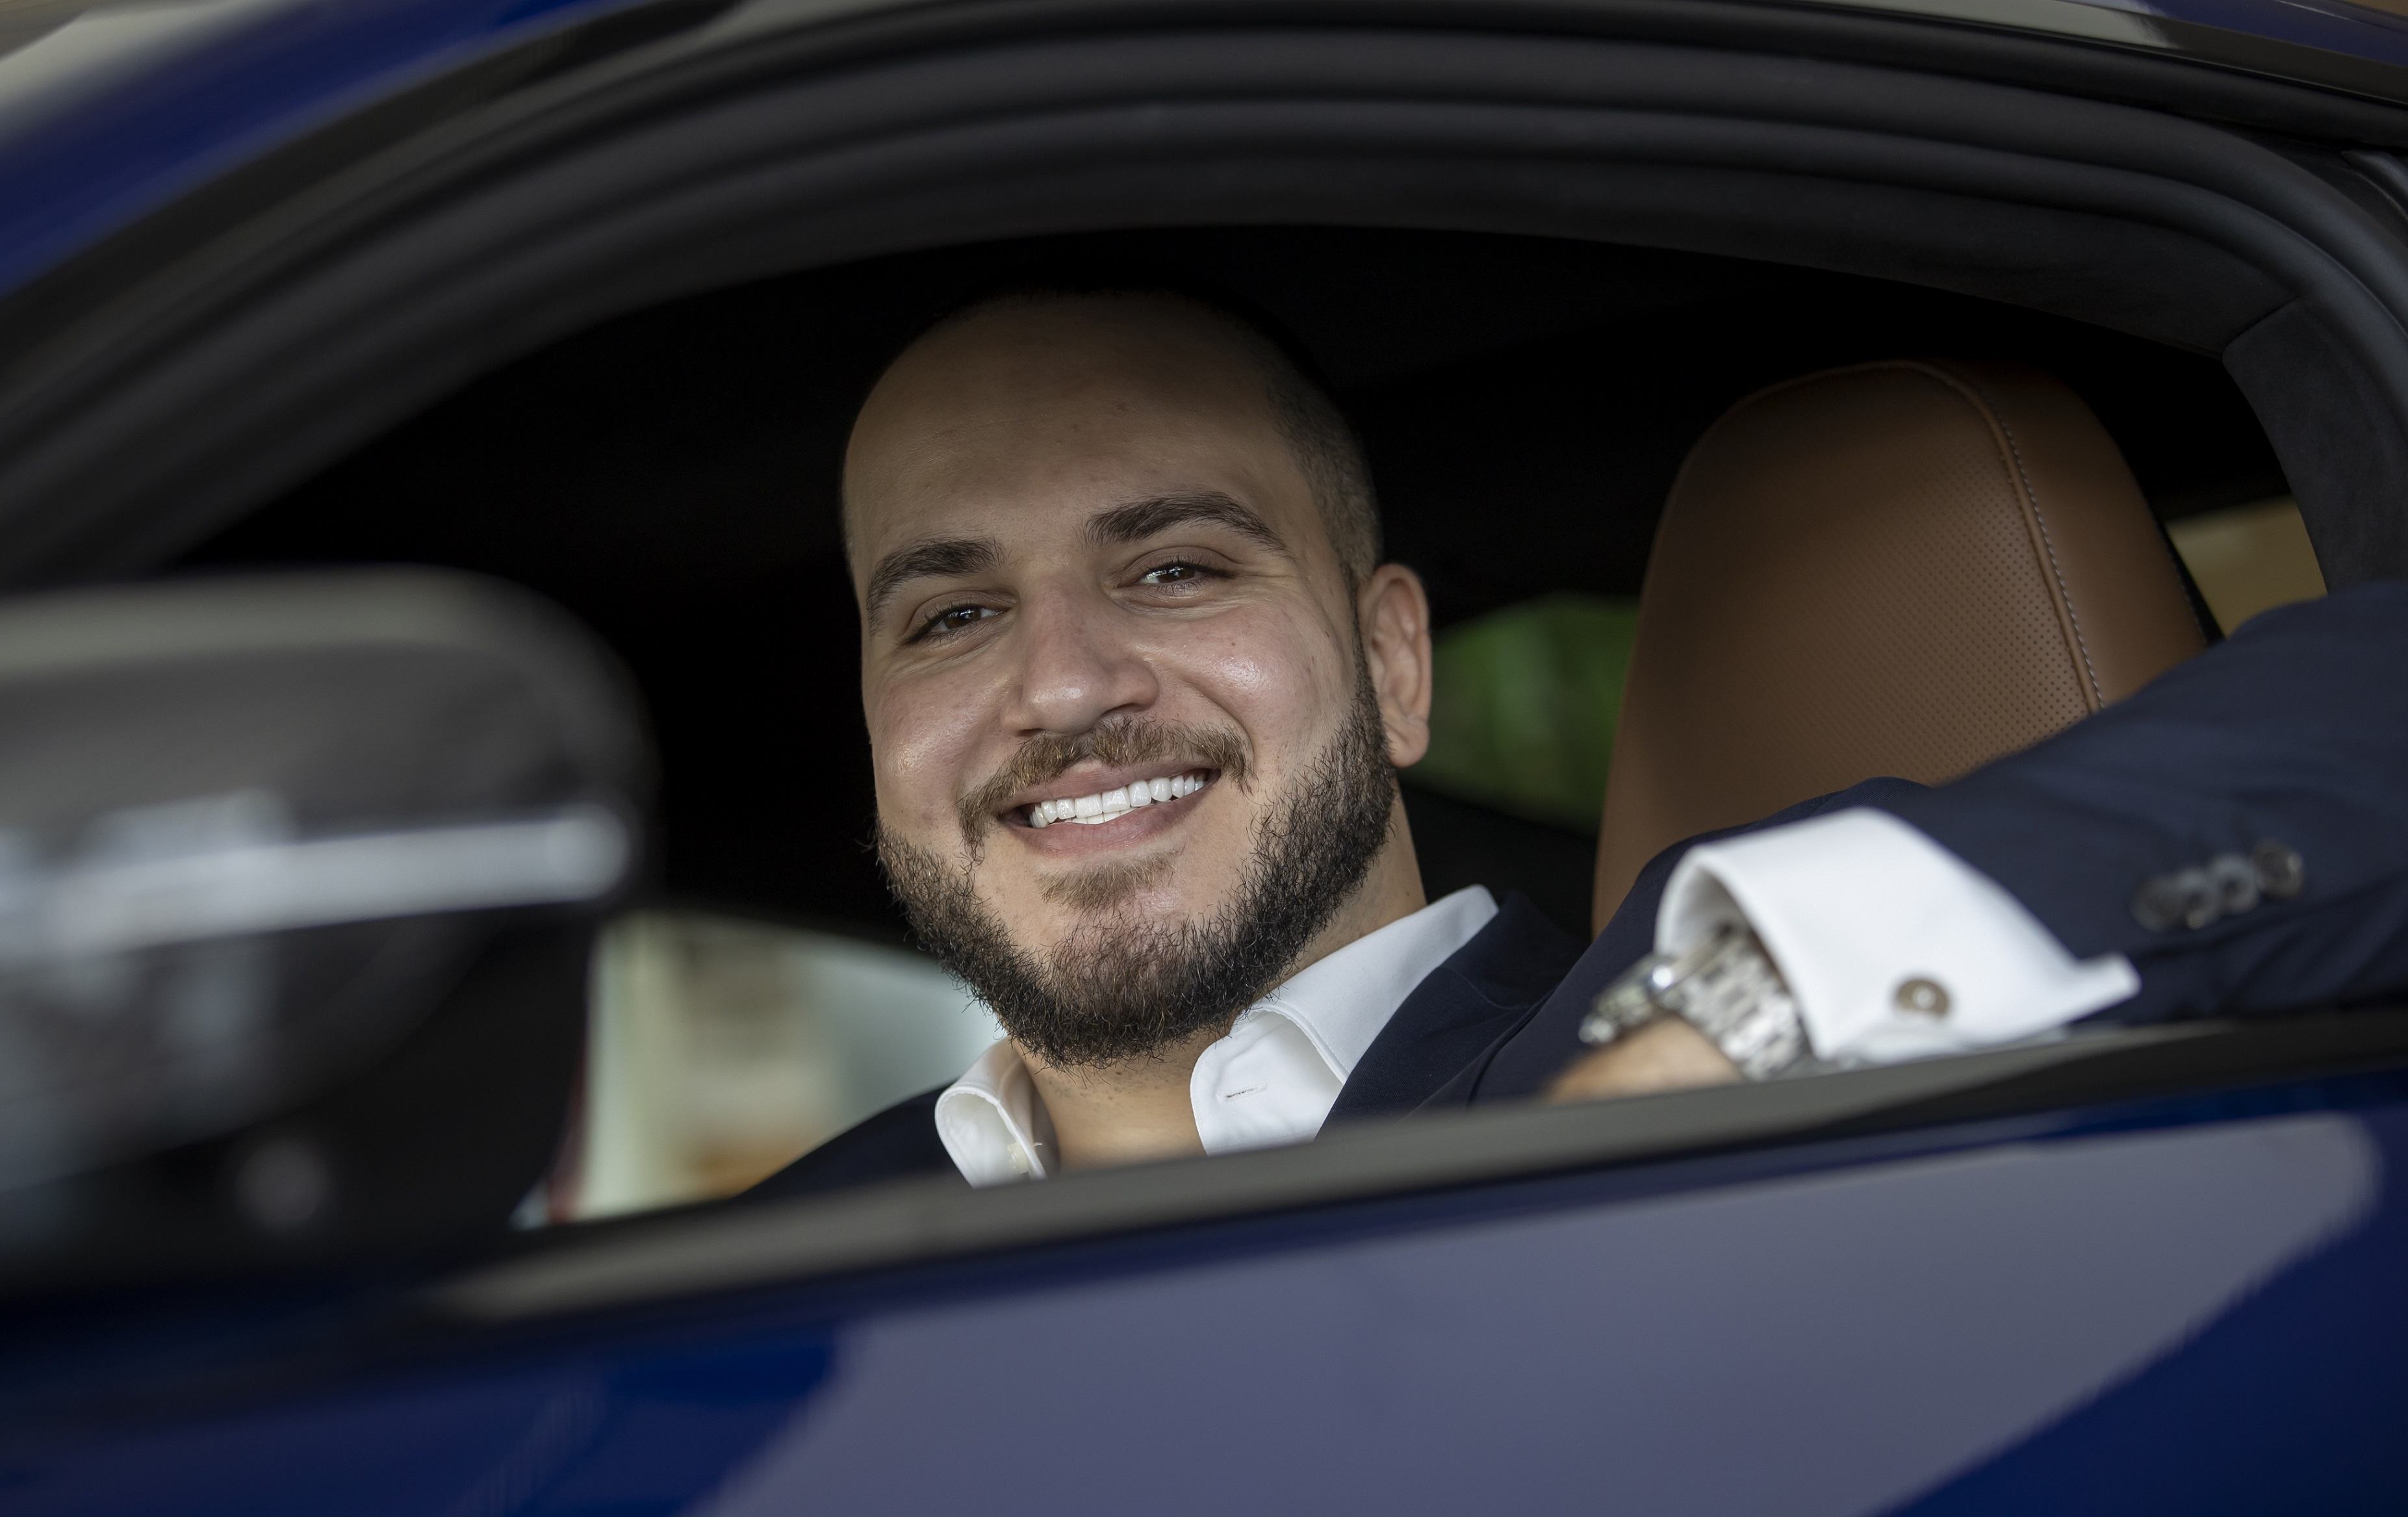 BMW Group Middle East names Osama Sherif as new Head of Corporate Communications